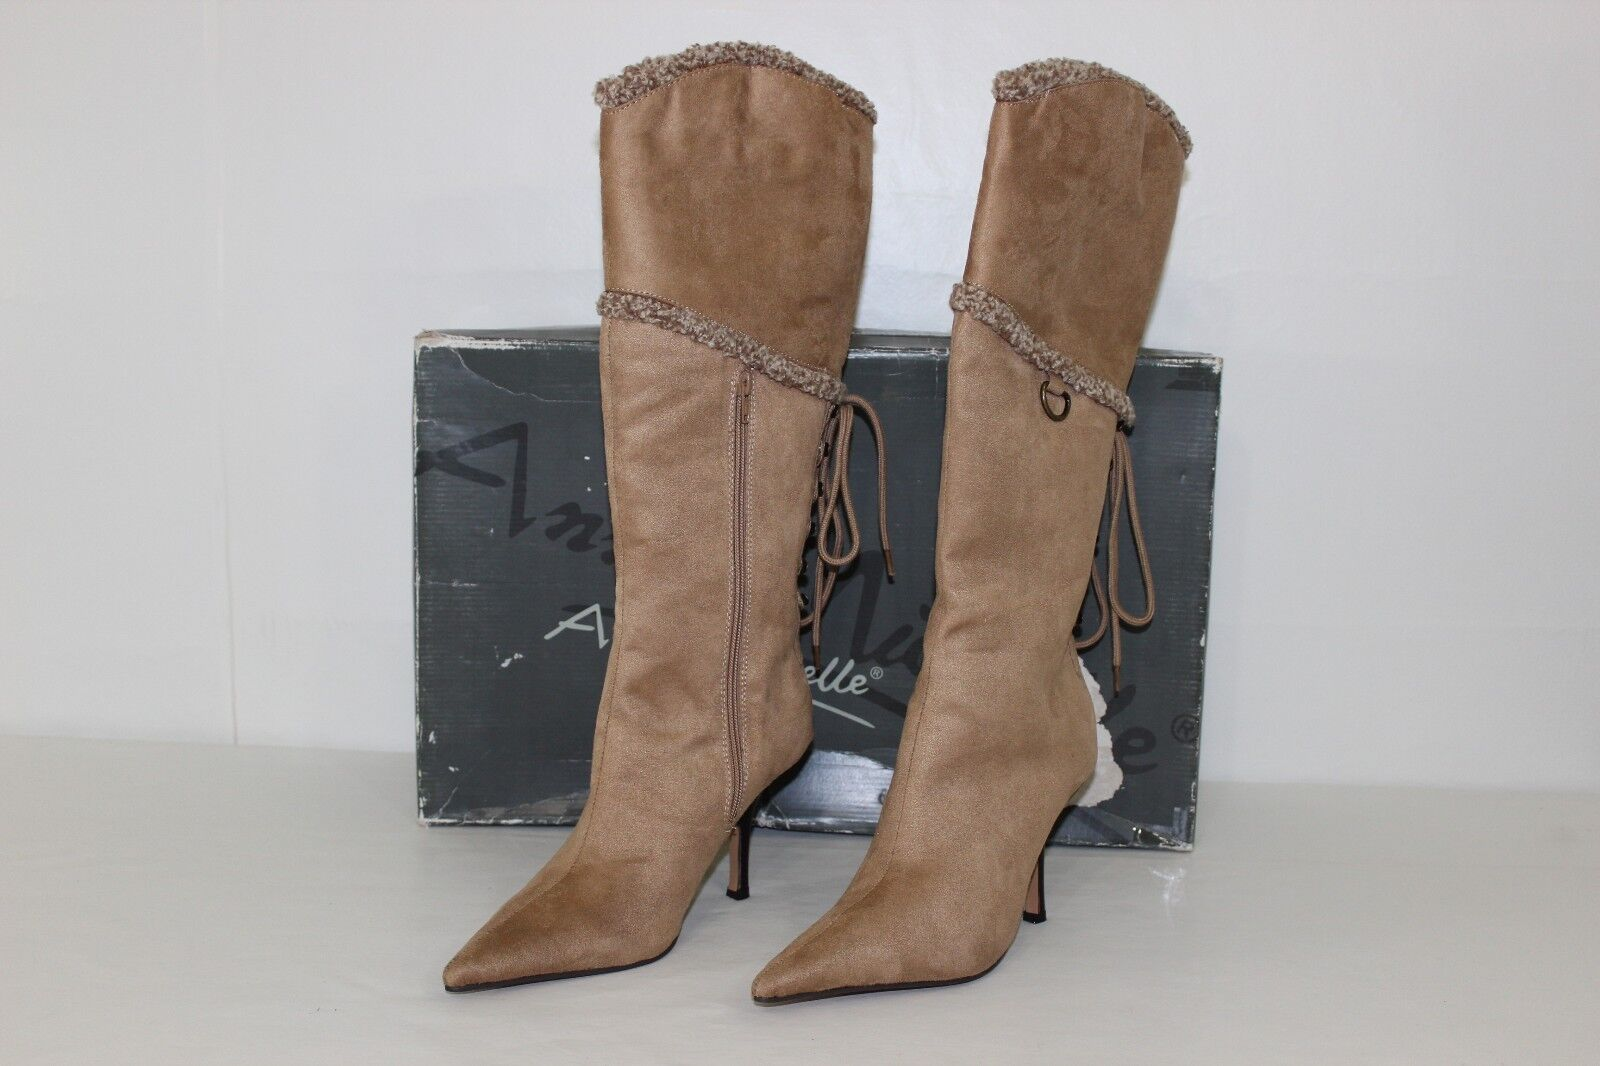 Anne Michelle femmes Sz 9 marron Faux Suede Knee High Zip Up High Heel bottes NEW